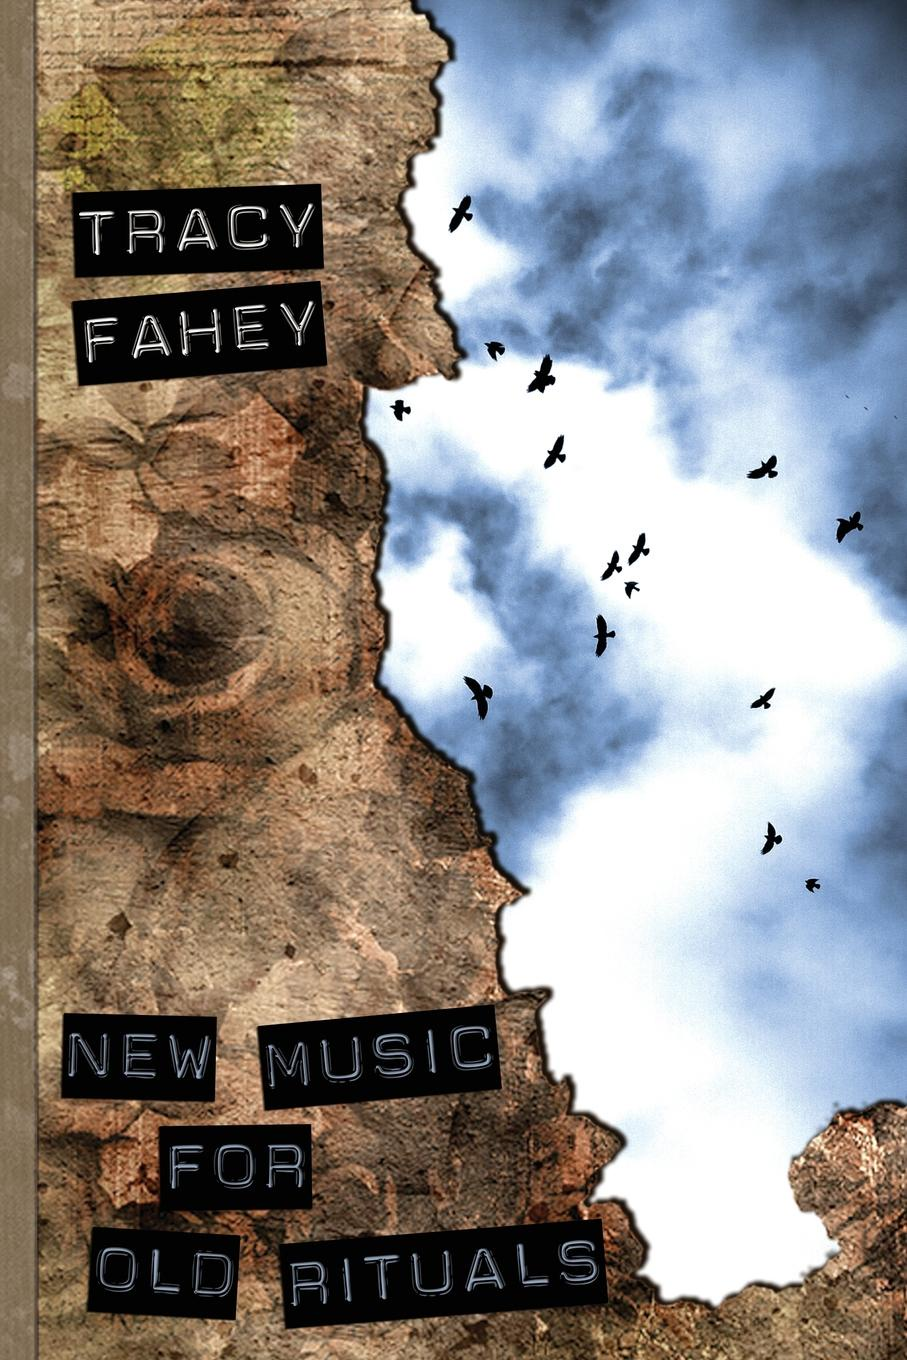 Tracy Fahey New Music for Old Rituals sophie fox sea that old time child roberta